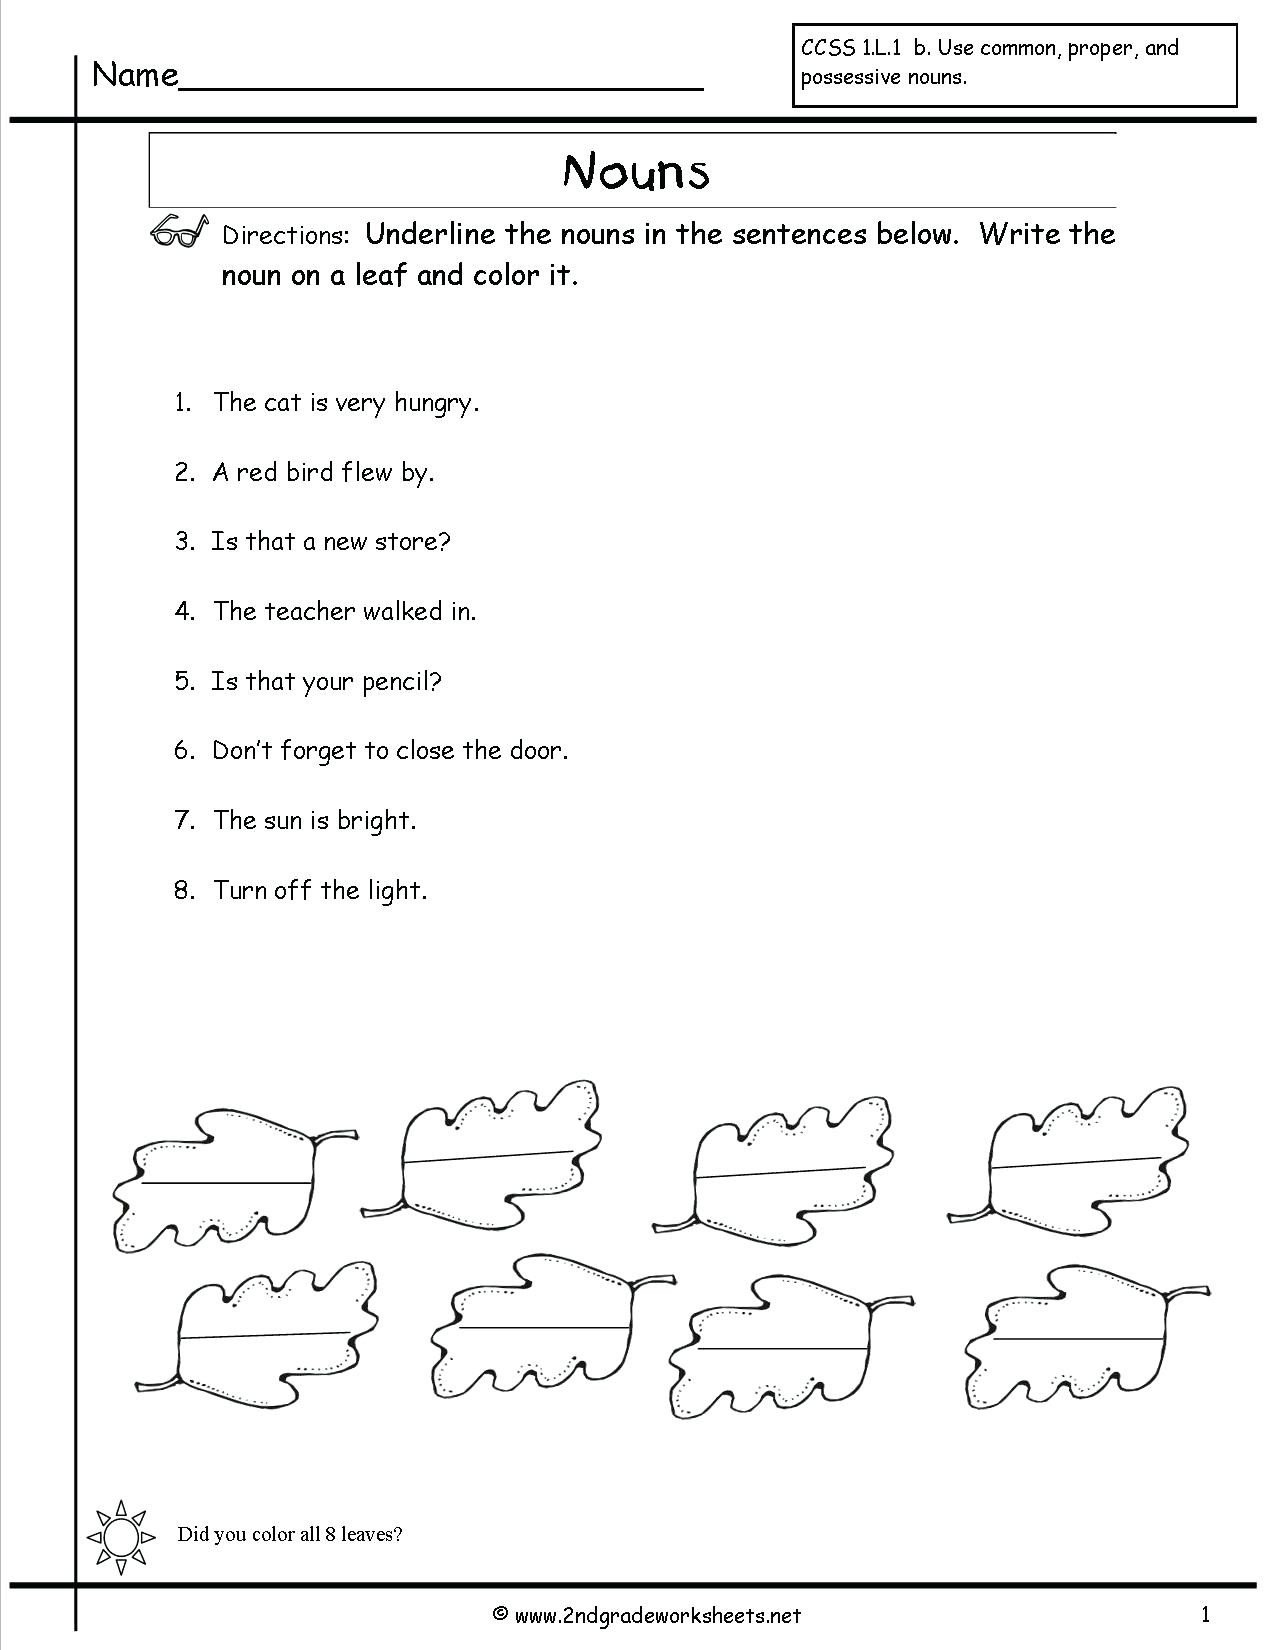 Pronoun Worksheets 5th Grade Nouns and Pronouns Worksheets Best Ideas Worksheet About